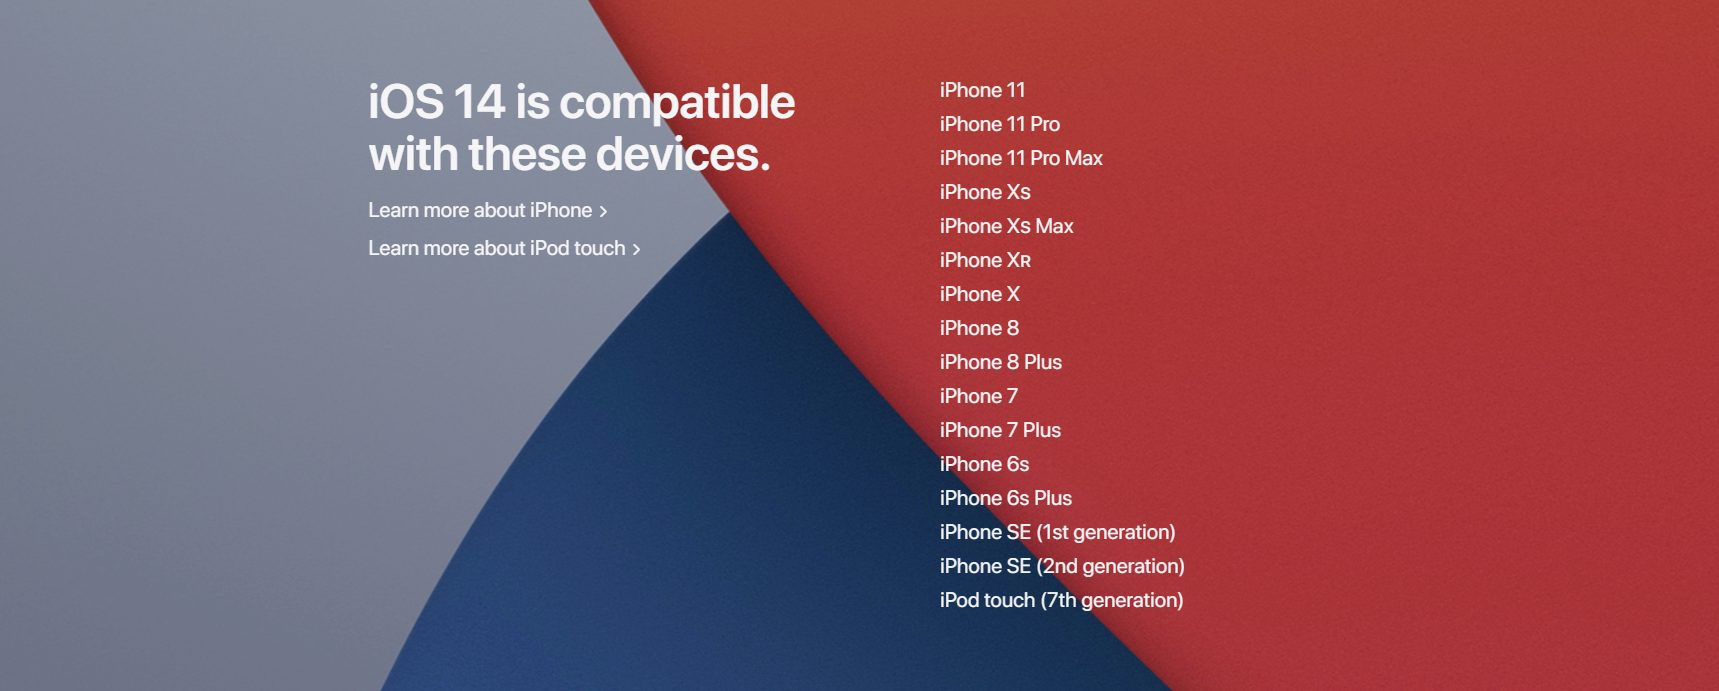 iOS 14 compatibility